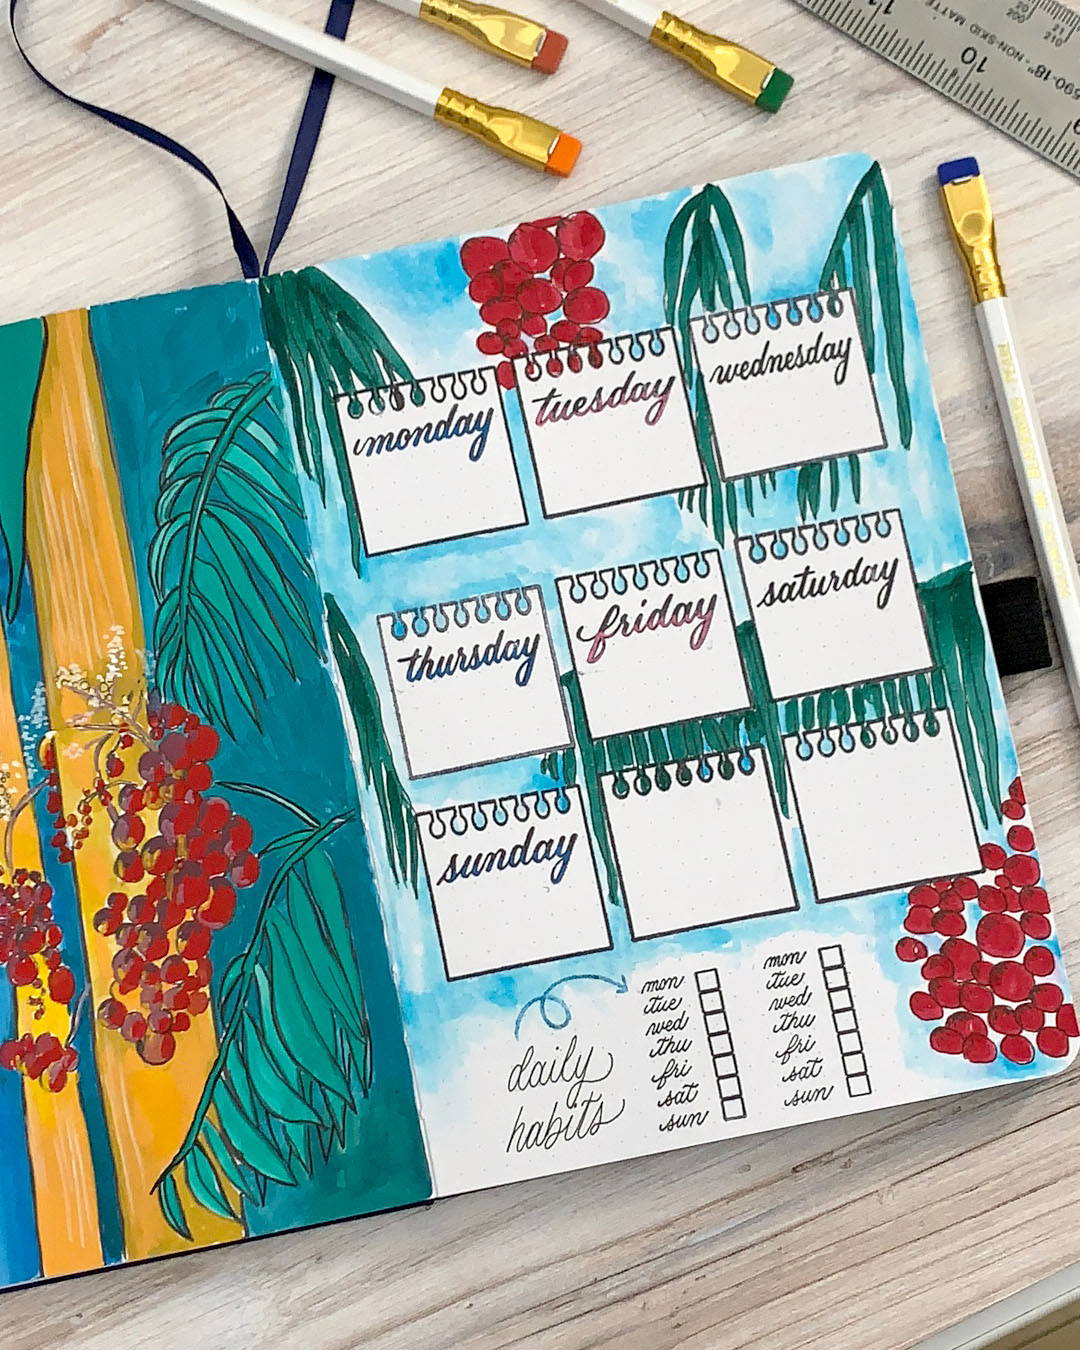 Stamped bullet journal ideas